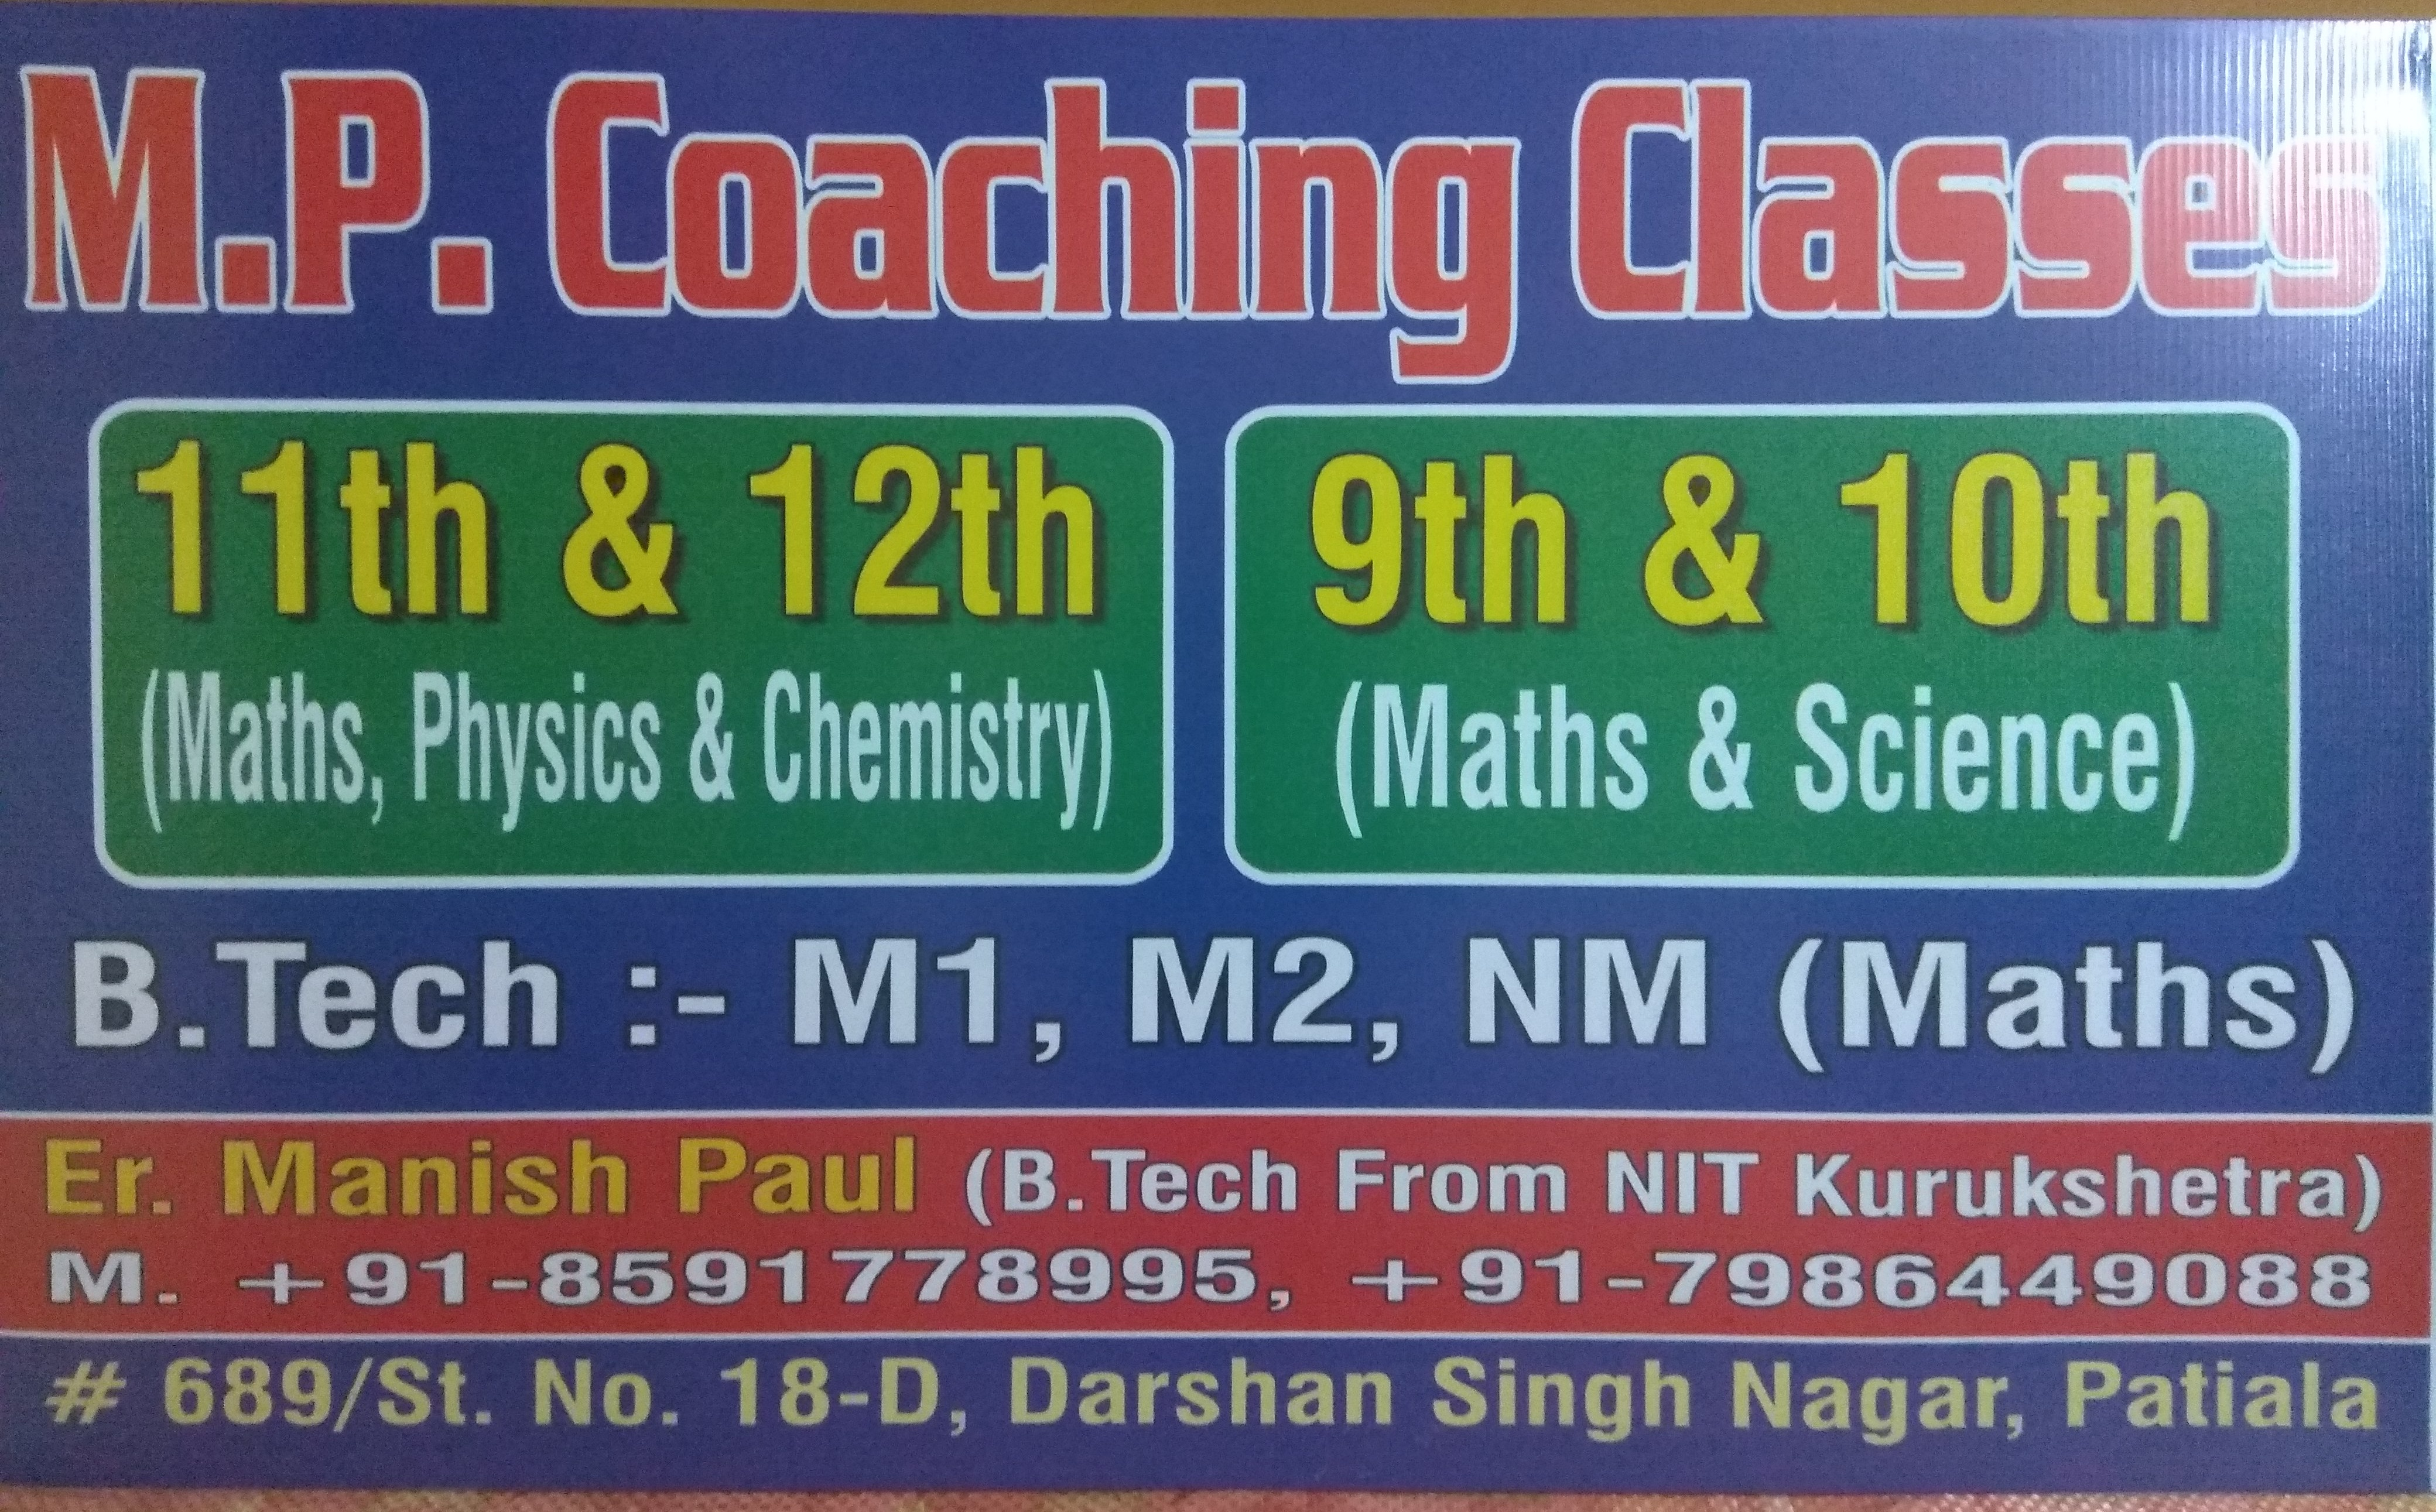 Physics Tuitions for 11 & 12th Classes in Patiala, Coaching